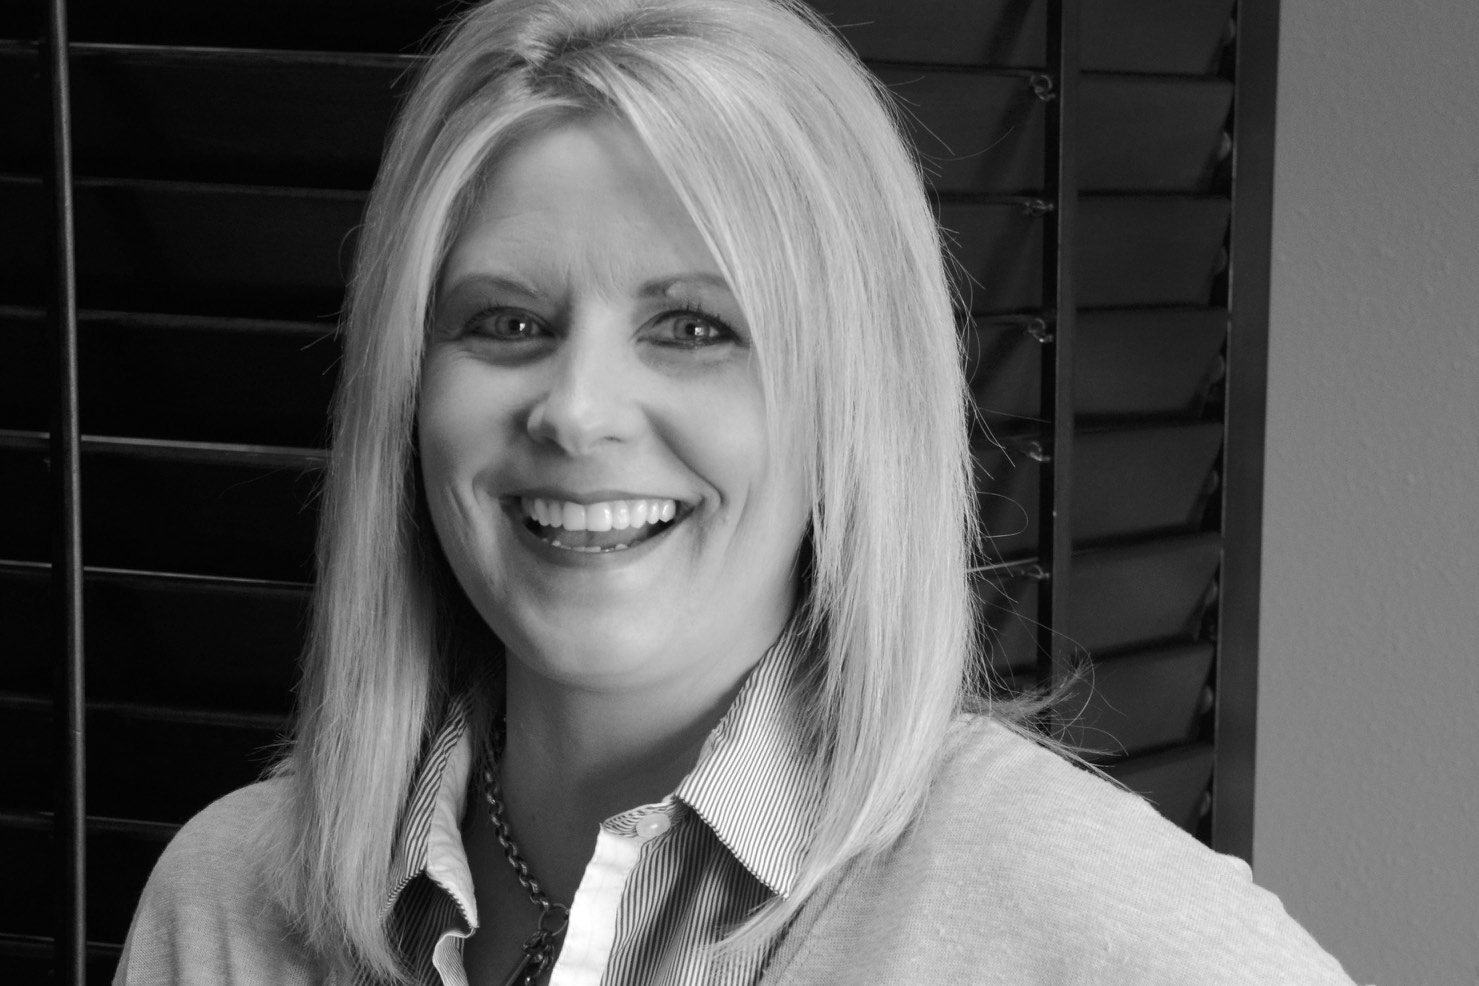 Meet Jenny! - Jenny is a professional stylist with 25 years of experience. She is very client focused, paying specific attention to their beauty goals, and goes above and beyond to help achieve them. If you want big city style with a small town touch, Jenny is your stylist.Book an appointment: 320-241-4247